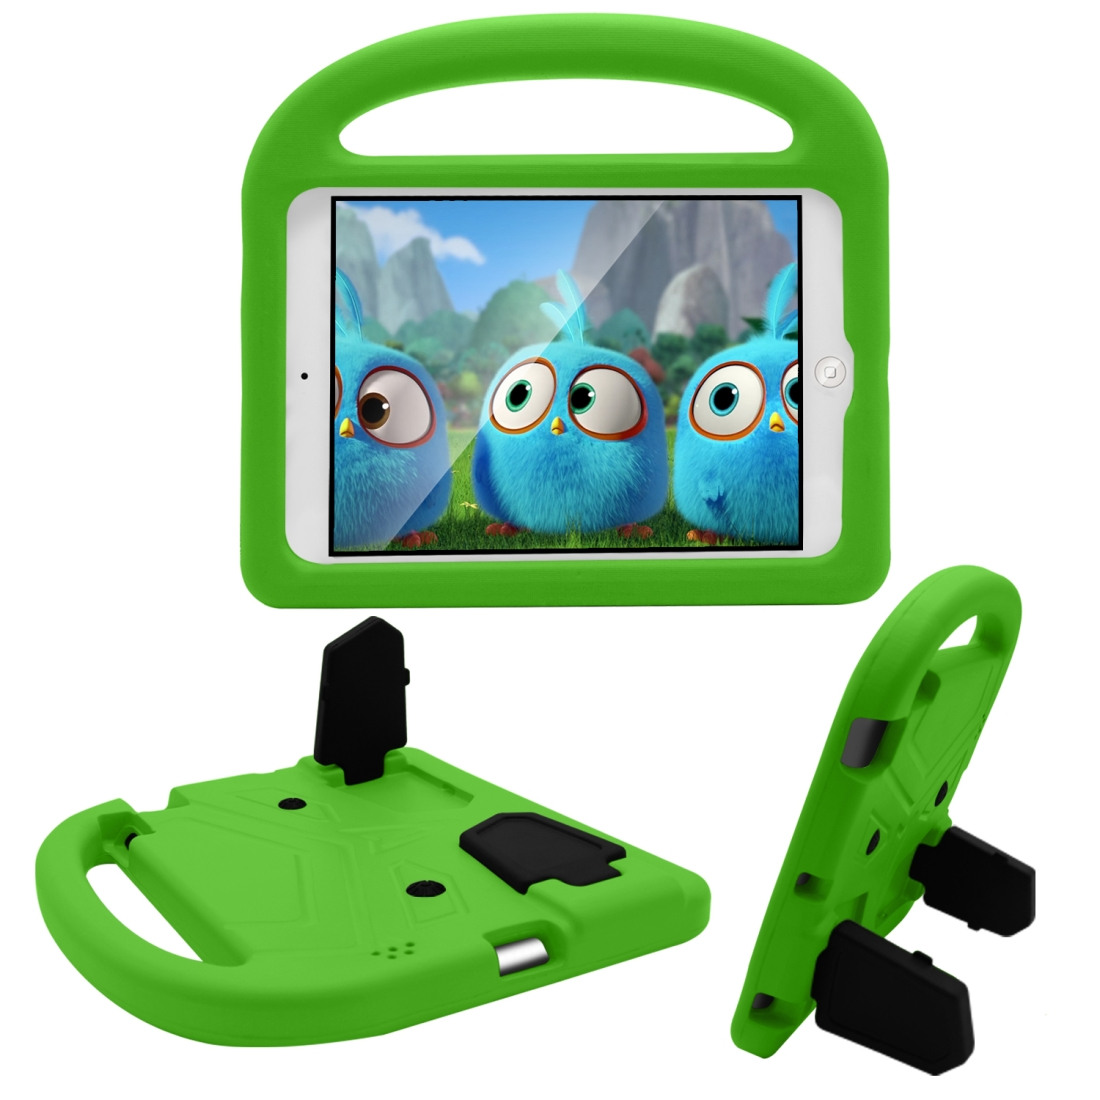 iPad Cover For Kids Fits iPad 2/3/4 With A Kid Friendly Durable Shockproof EVA Design (Green)